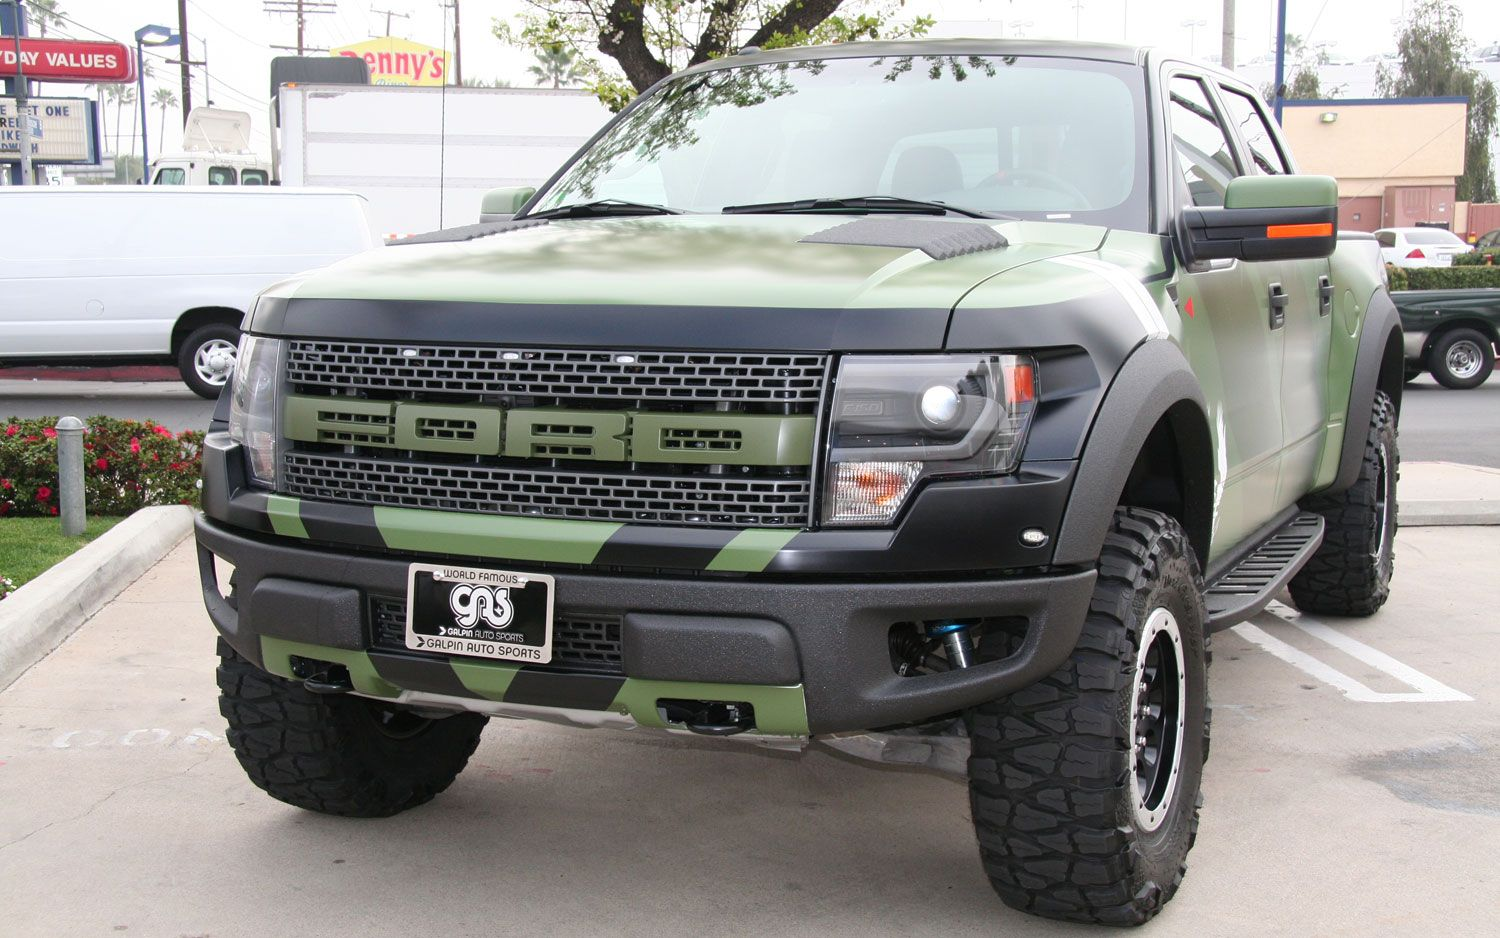 top rated trucks 2013 site:pinterest.com - 1000+ ideas about 2013 Ford aptor on Pinterest Ford aptor ...